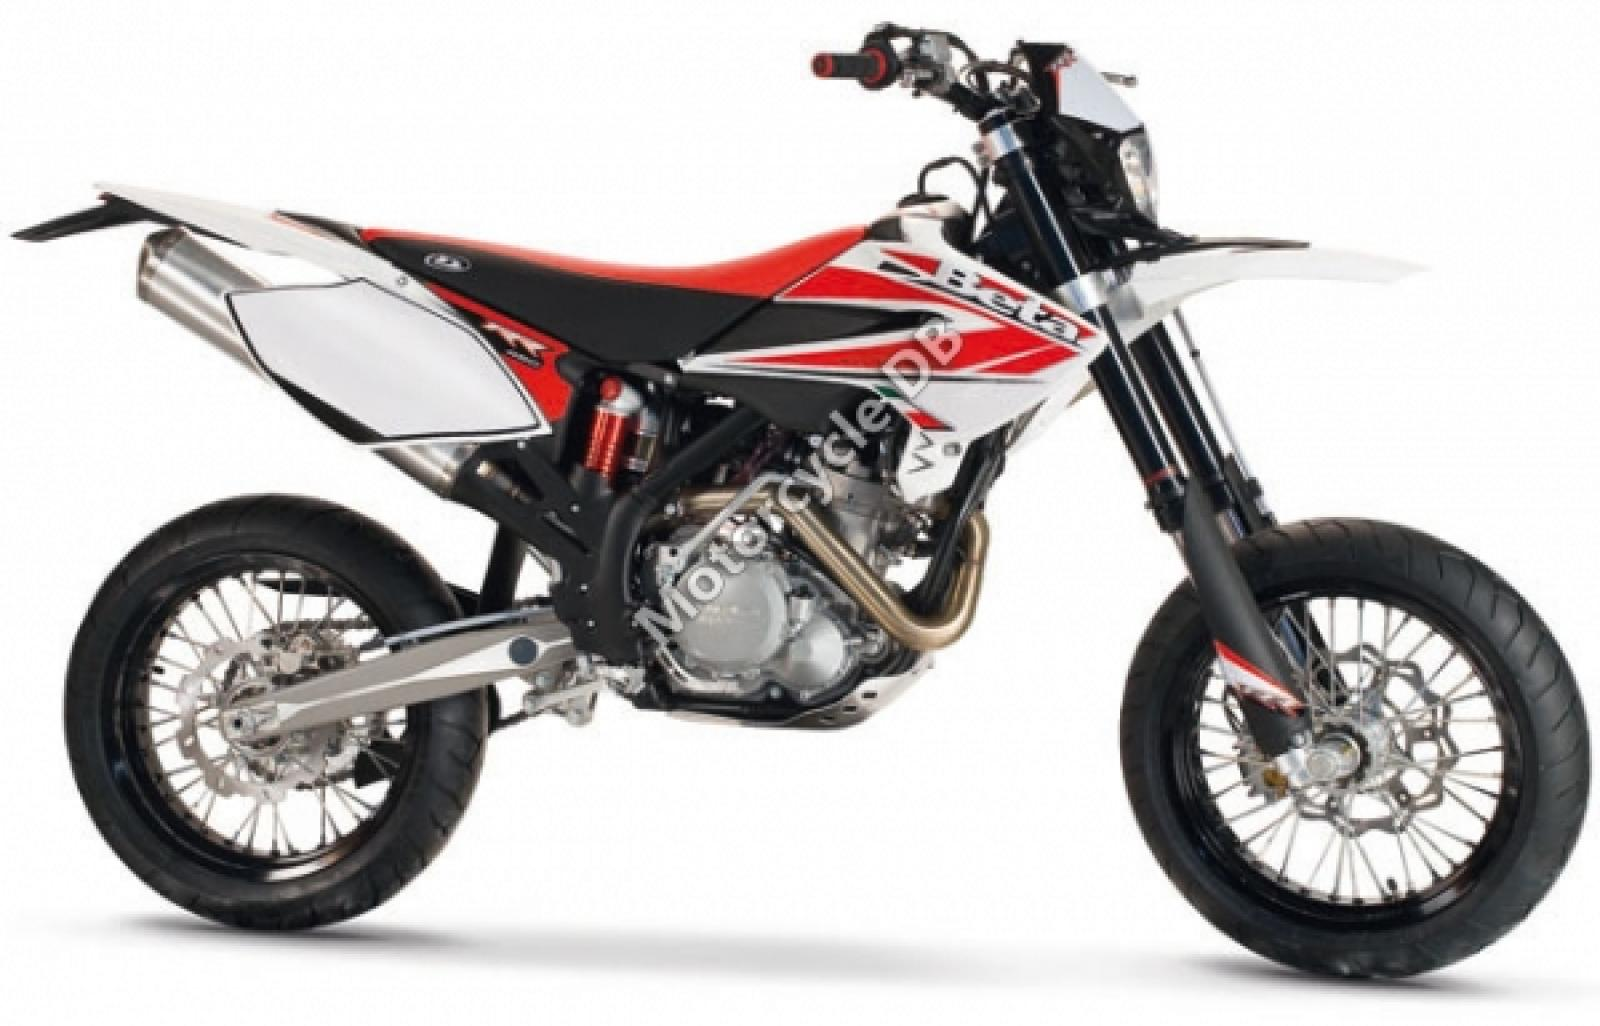 Highland 950 V2 Outback Supermoto 2007 images #74860